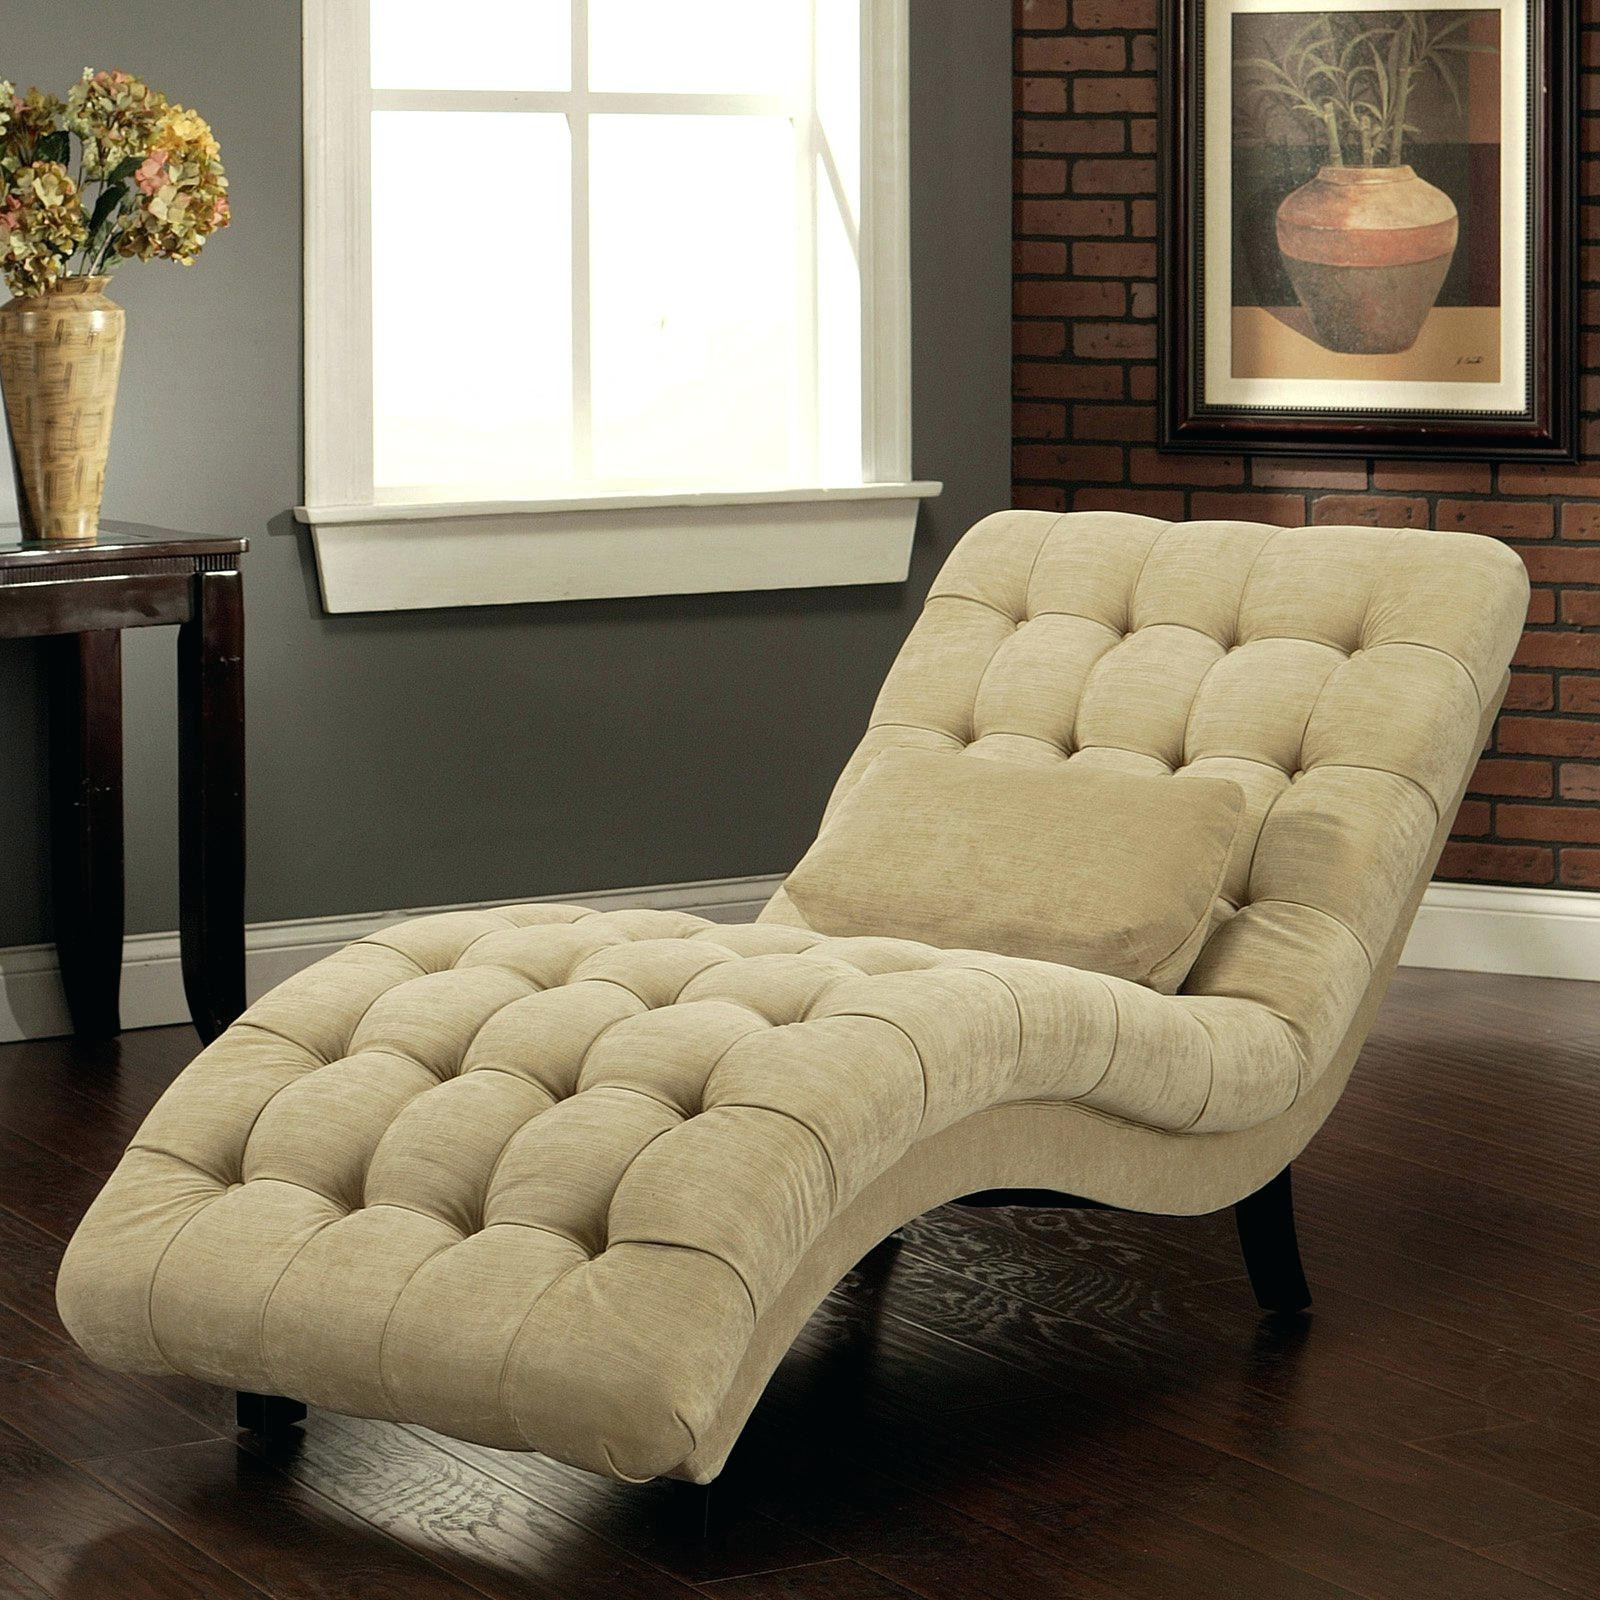 Well Known Microfiber Chaise Lounge Chairs In Awesome Microfiber Chaise Lounge Chair – Home (View 8 of 15)